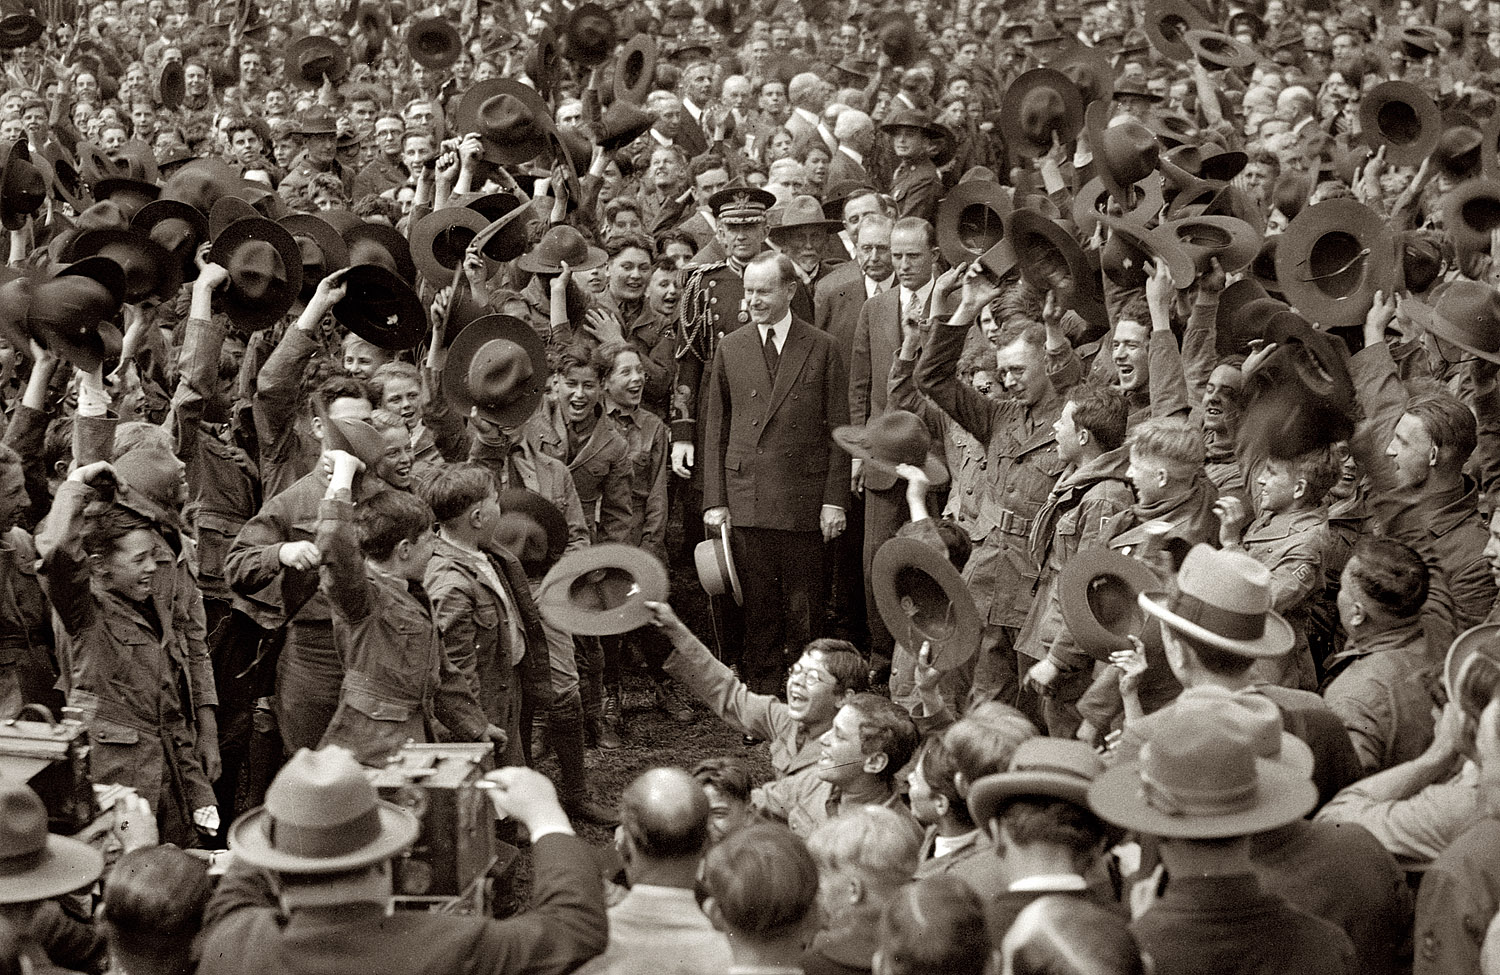 "Photographed here during the 16th Annual National Council of Boy Scouts, May 1, 1926 (two years after his telephone message), President Coolidge would present the first Silver Buffalo Awards in recognition of distinguished service in the Scouts, saying, ""The more I have studied this movement, its inception, purposes, organization, and principles, the more I have been impressed. Not only is it based on the fundamental rules of right thinking and acting, but it seems to embrace in its code almost every virtue needed in the personal and social life of mankind. It is a wonderful instrument for good. If every boy in the United States could be placed under the wholesome influences of the Scout program, and should live up to the Scout Oath and rules, we would hear fewer pessimistic words as to the future of our nation."""